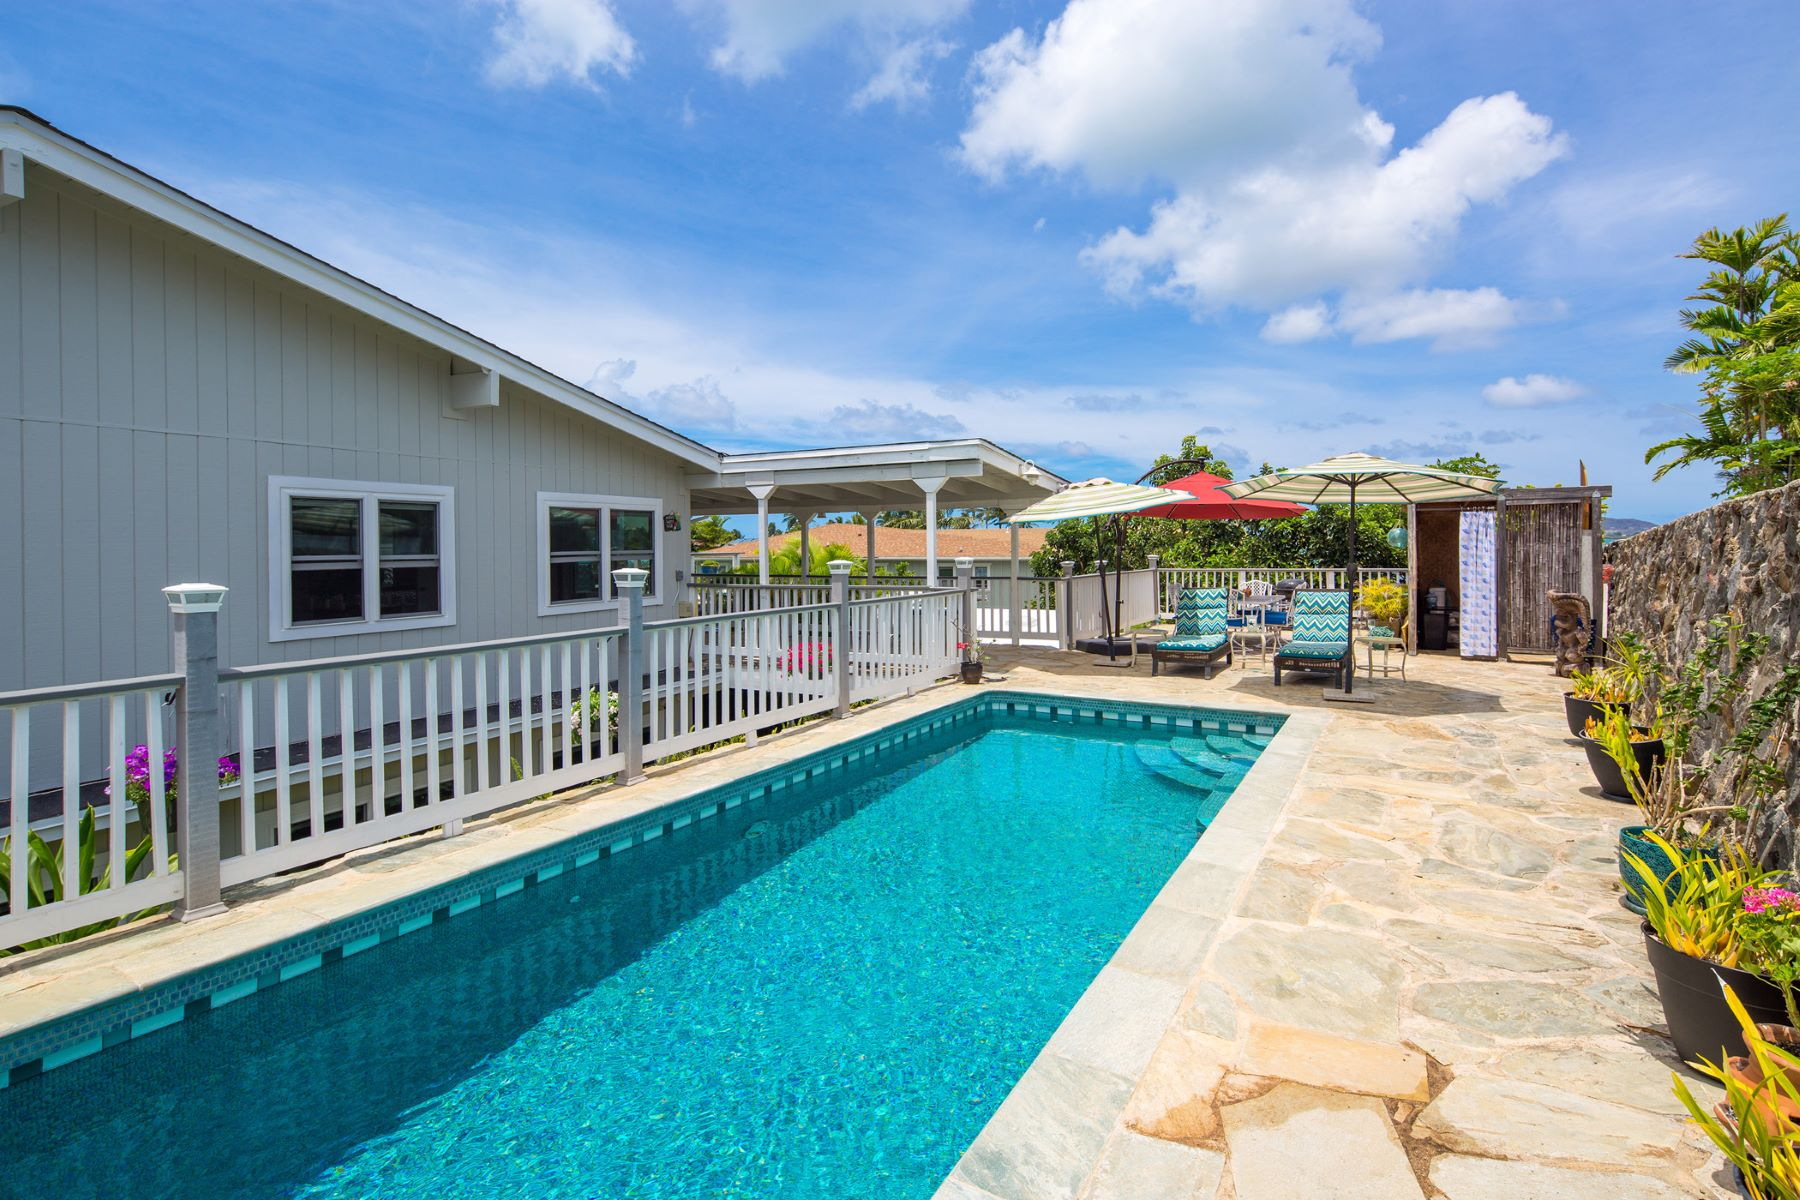 Additional photo for property listing at Luxury by the Sea 45-052 Ka Hanahou Place Kaneohe, Hawaii 96744 United States